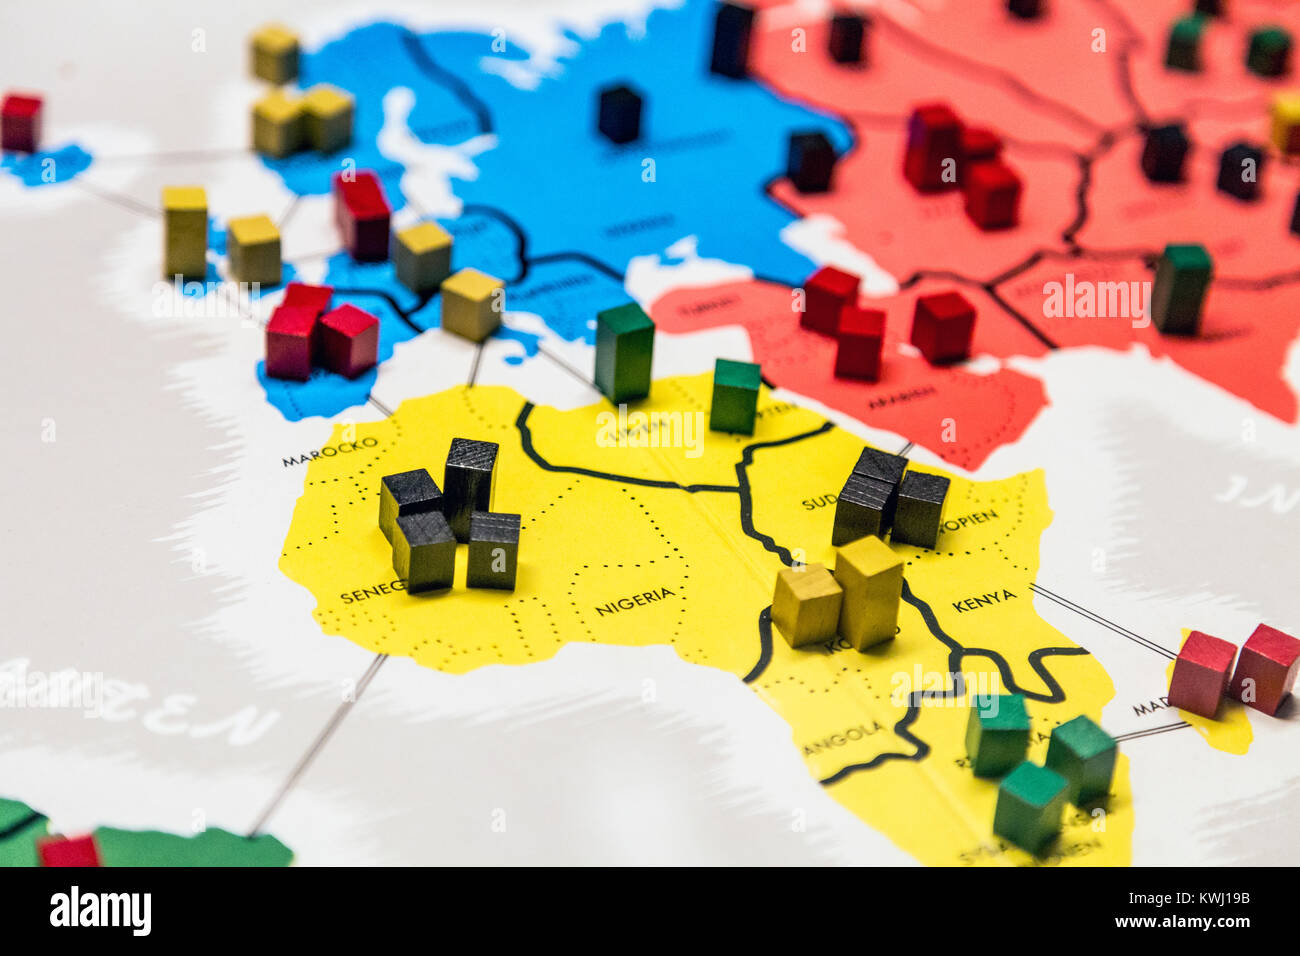 Risk game map stock photos risk game map stock images alamy risk conquest and diplomacy boardgame board close up stock image gumiabroncs Image collections